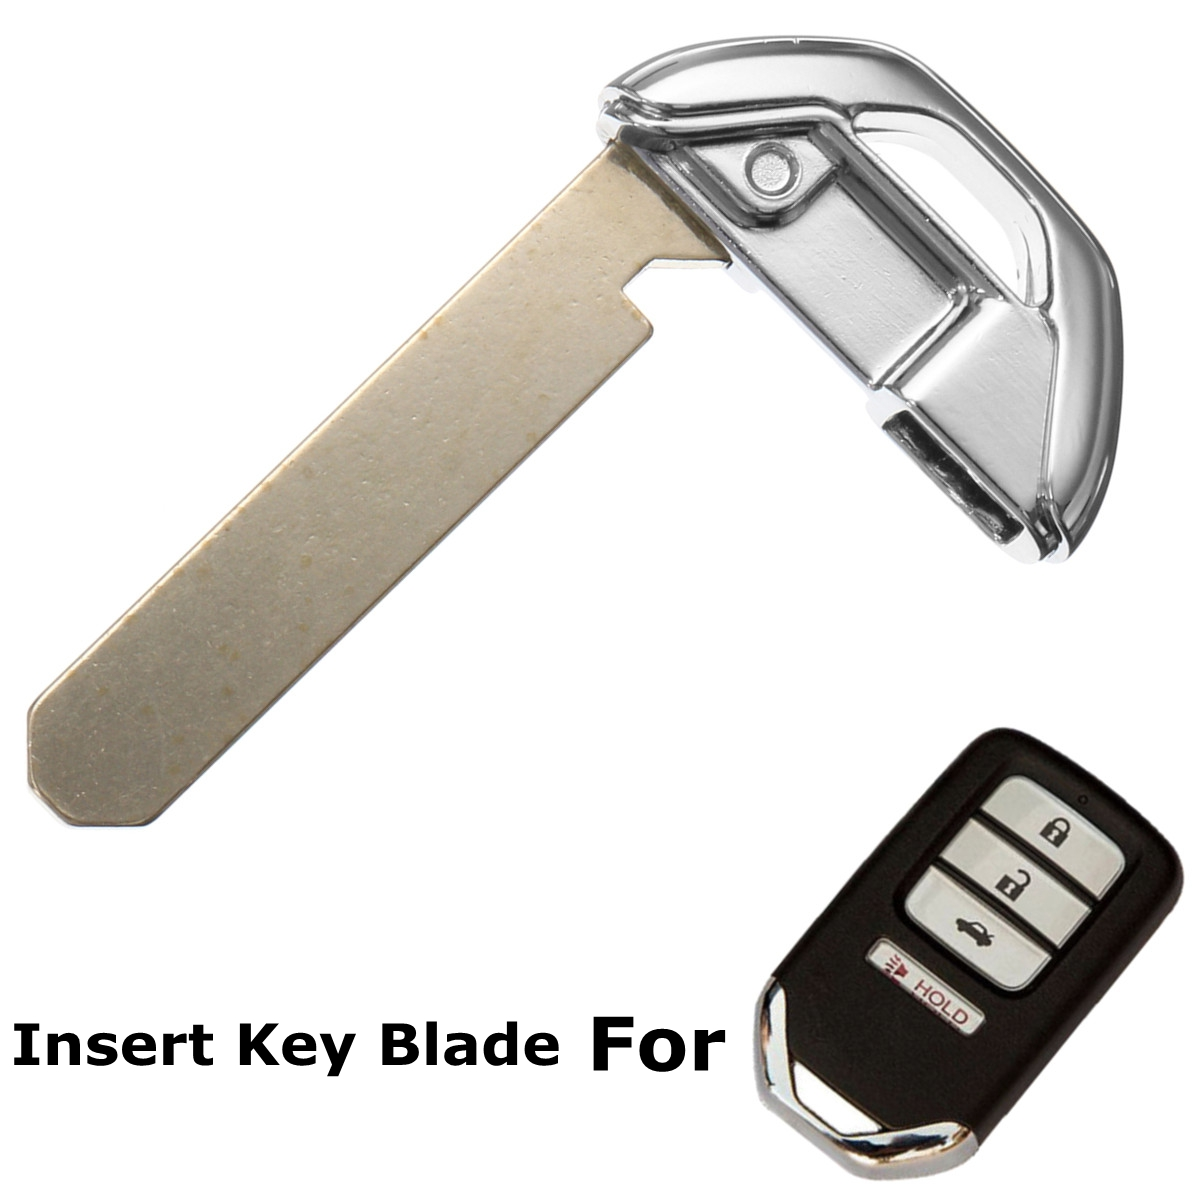 qualitykeylessplus Two Emergency Smart Prox Remote Fob Key Insert Replacements for Acura Uncut Blade Free KEYTAG